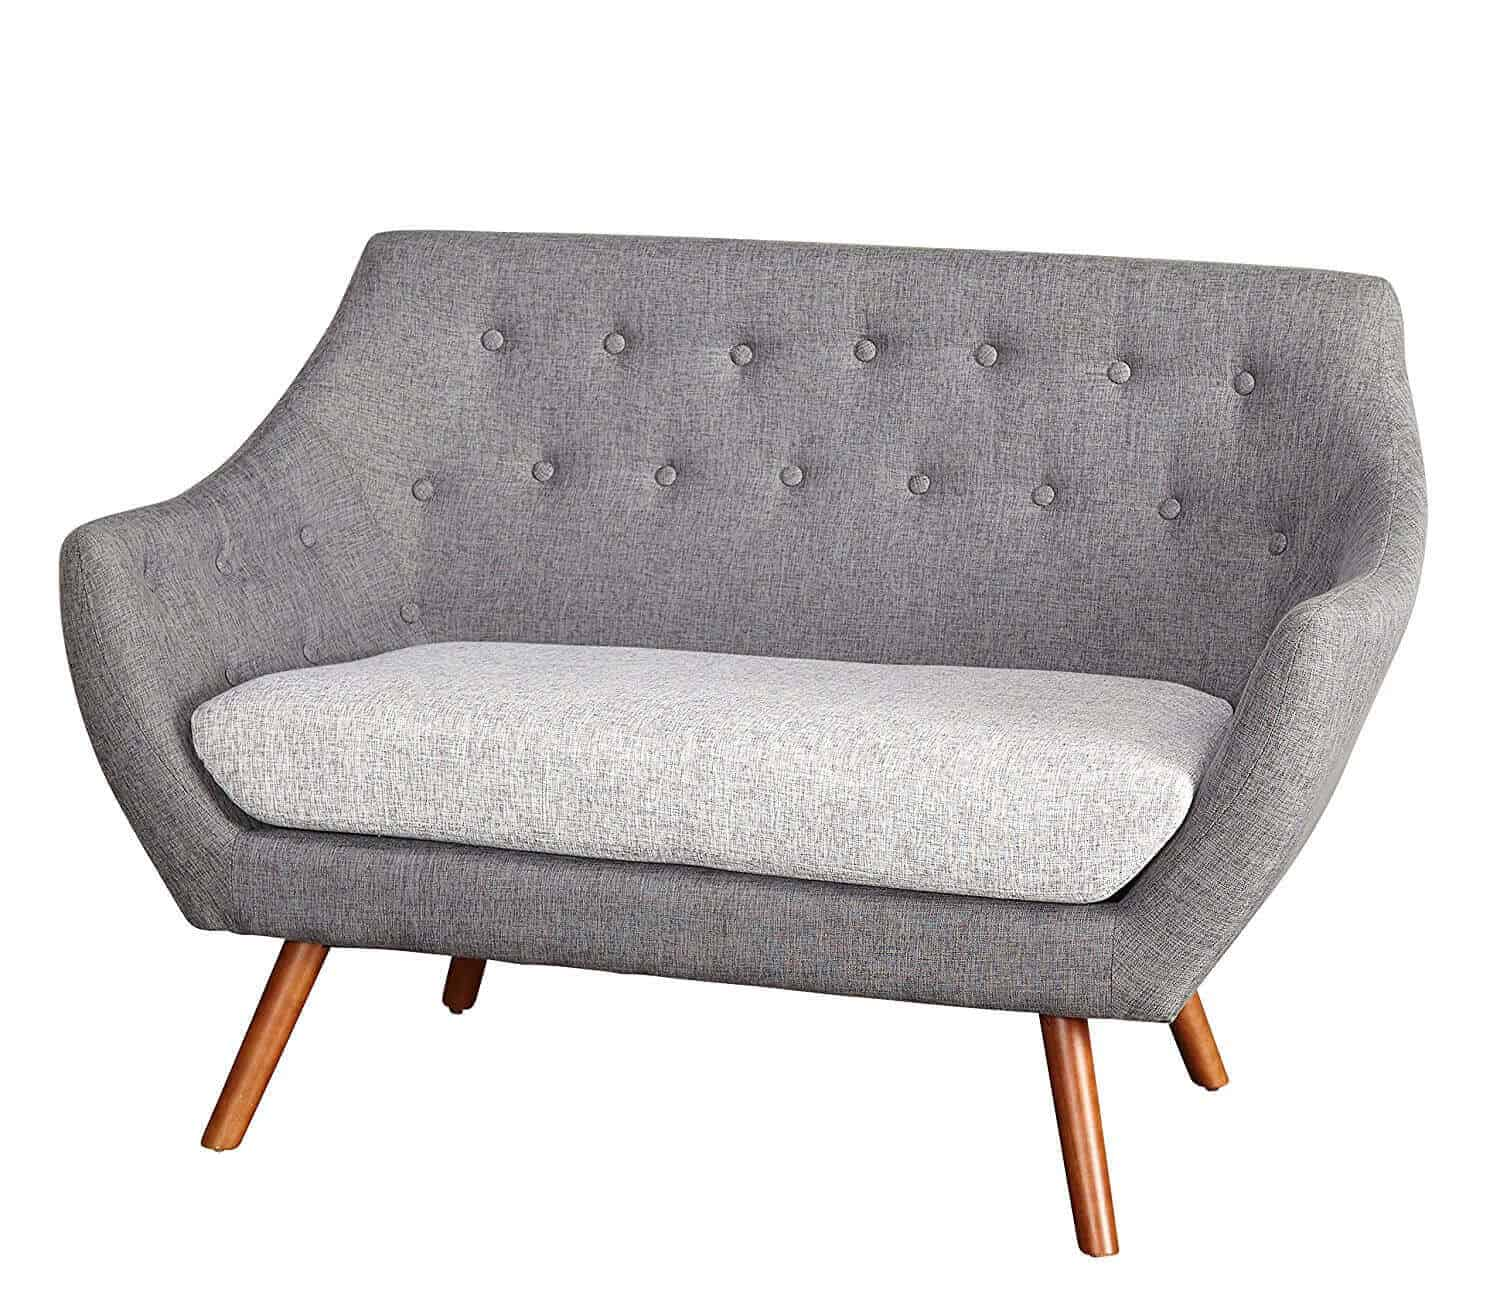 13 Lovely Small Loveseat Options For 2019